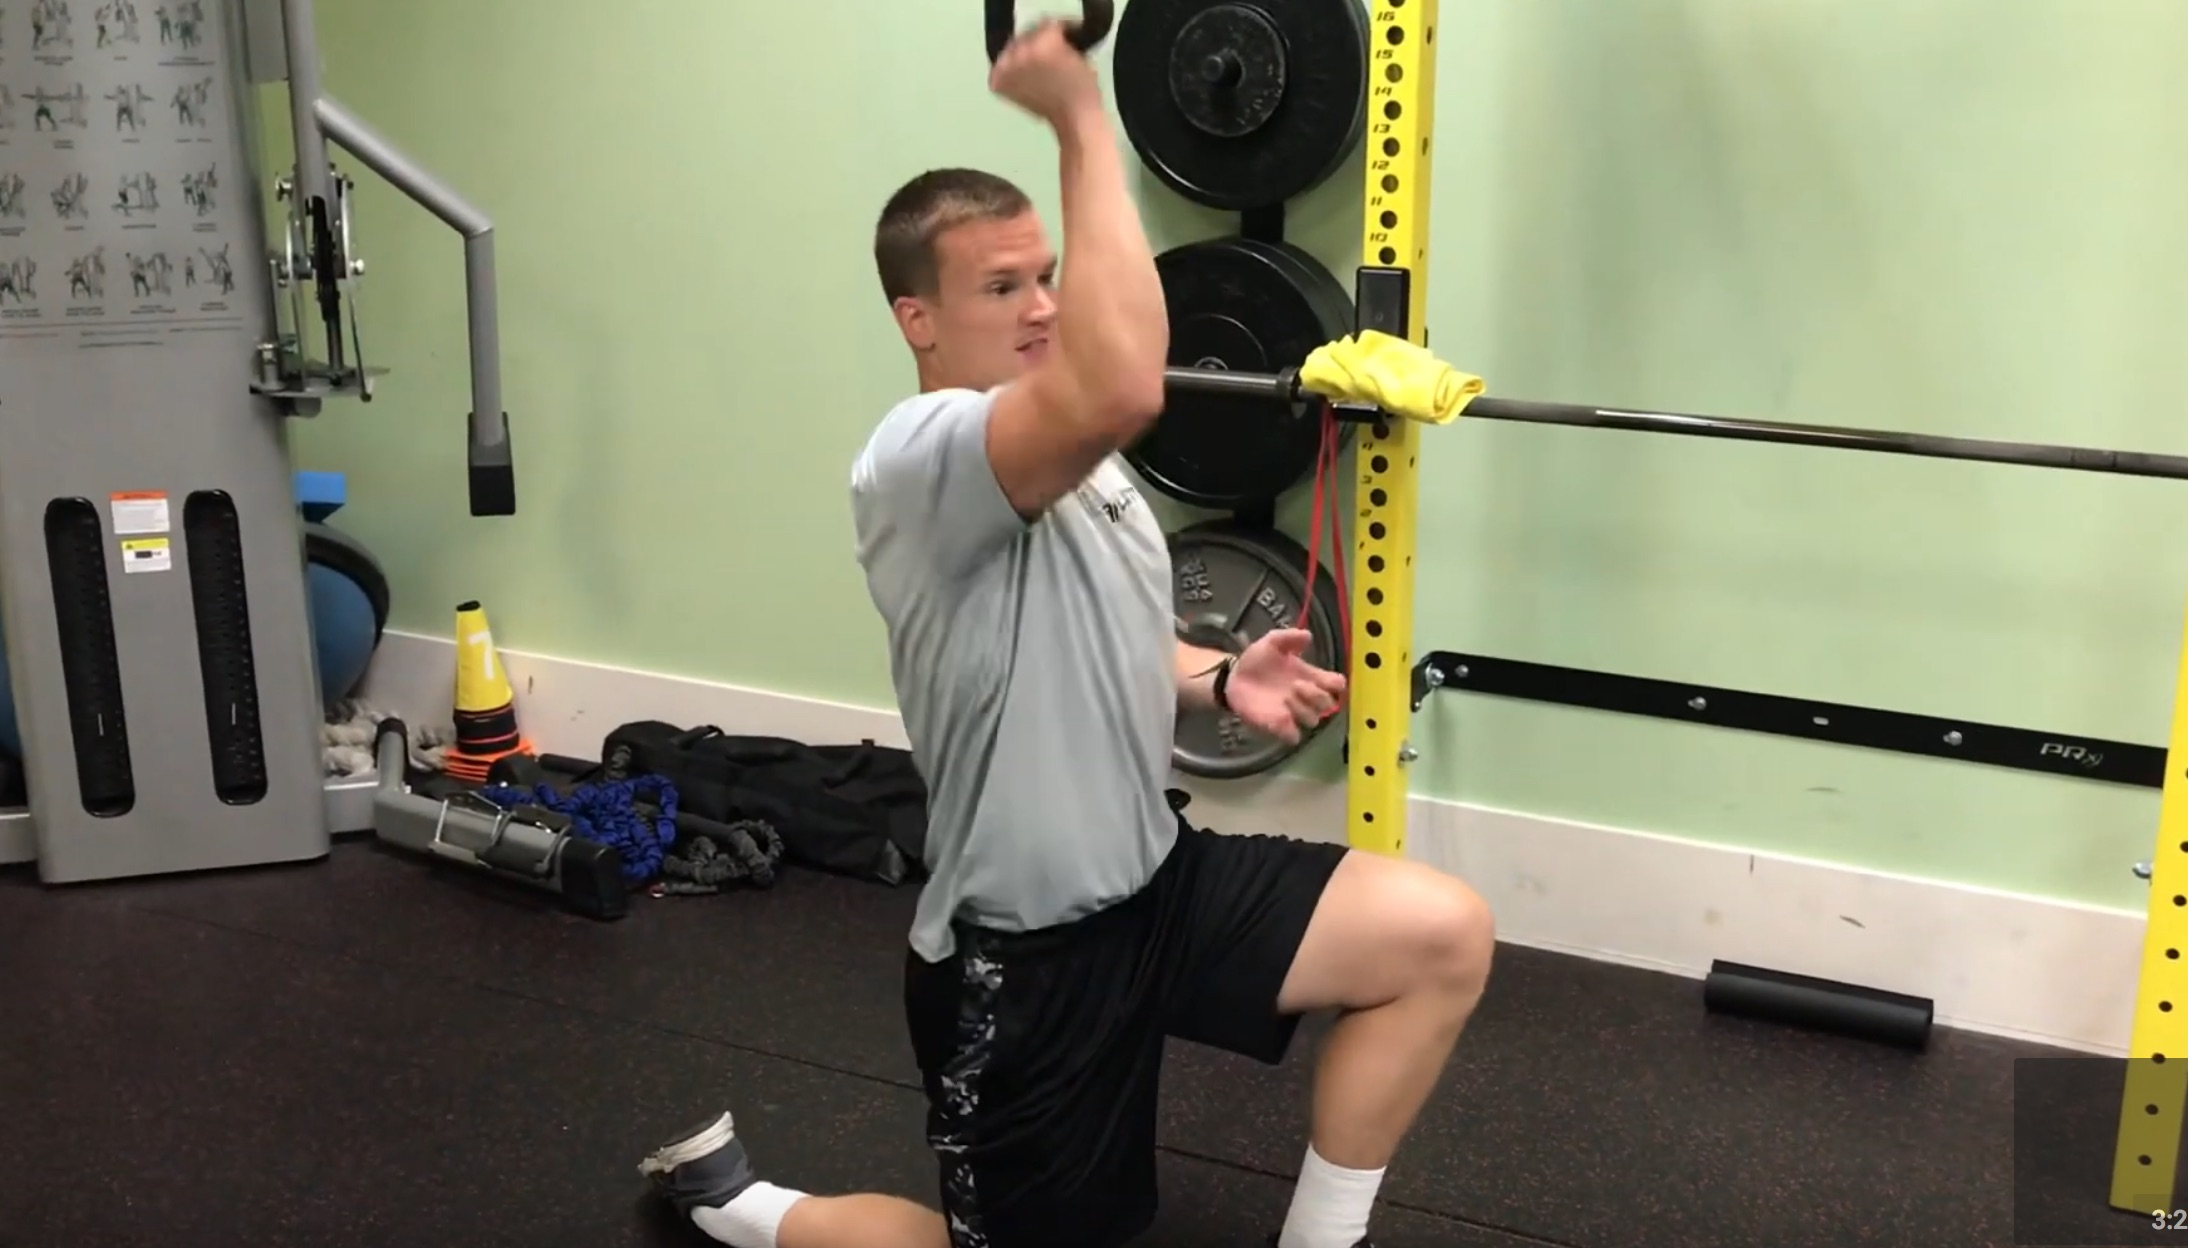 Beaufort Fitness: Shoulder Press Warm Up